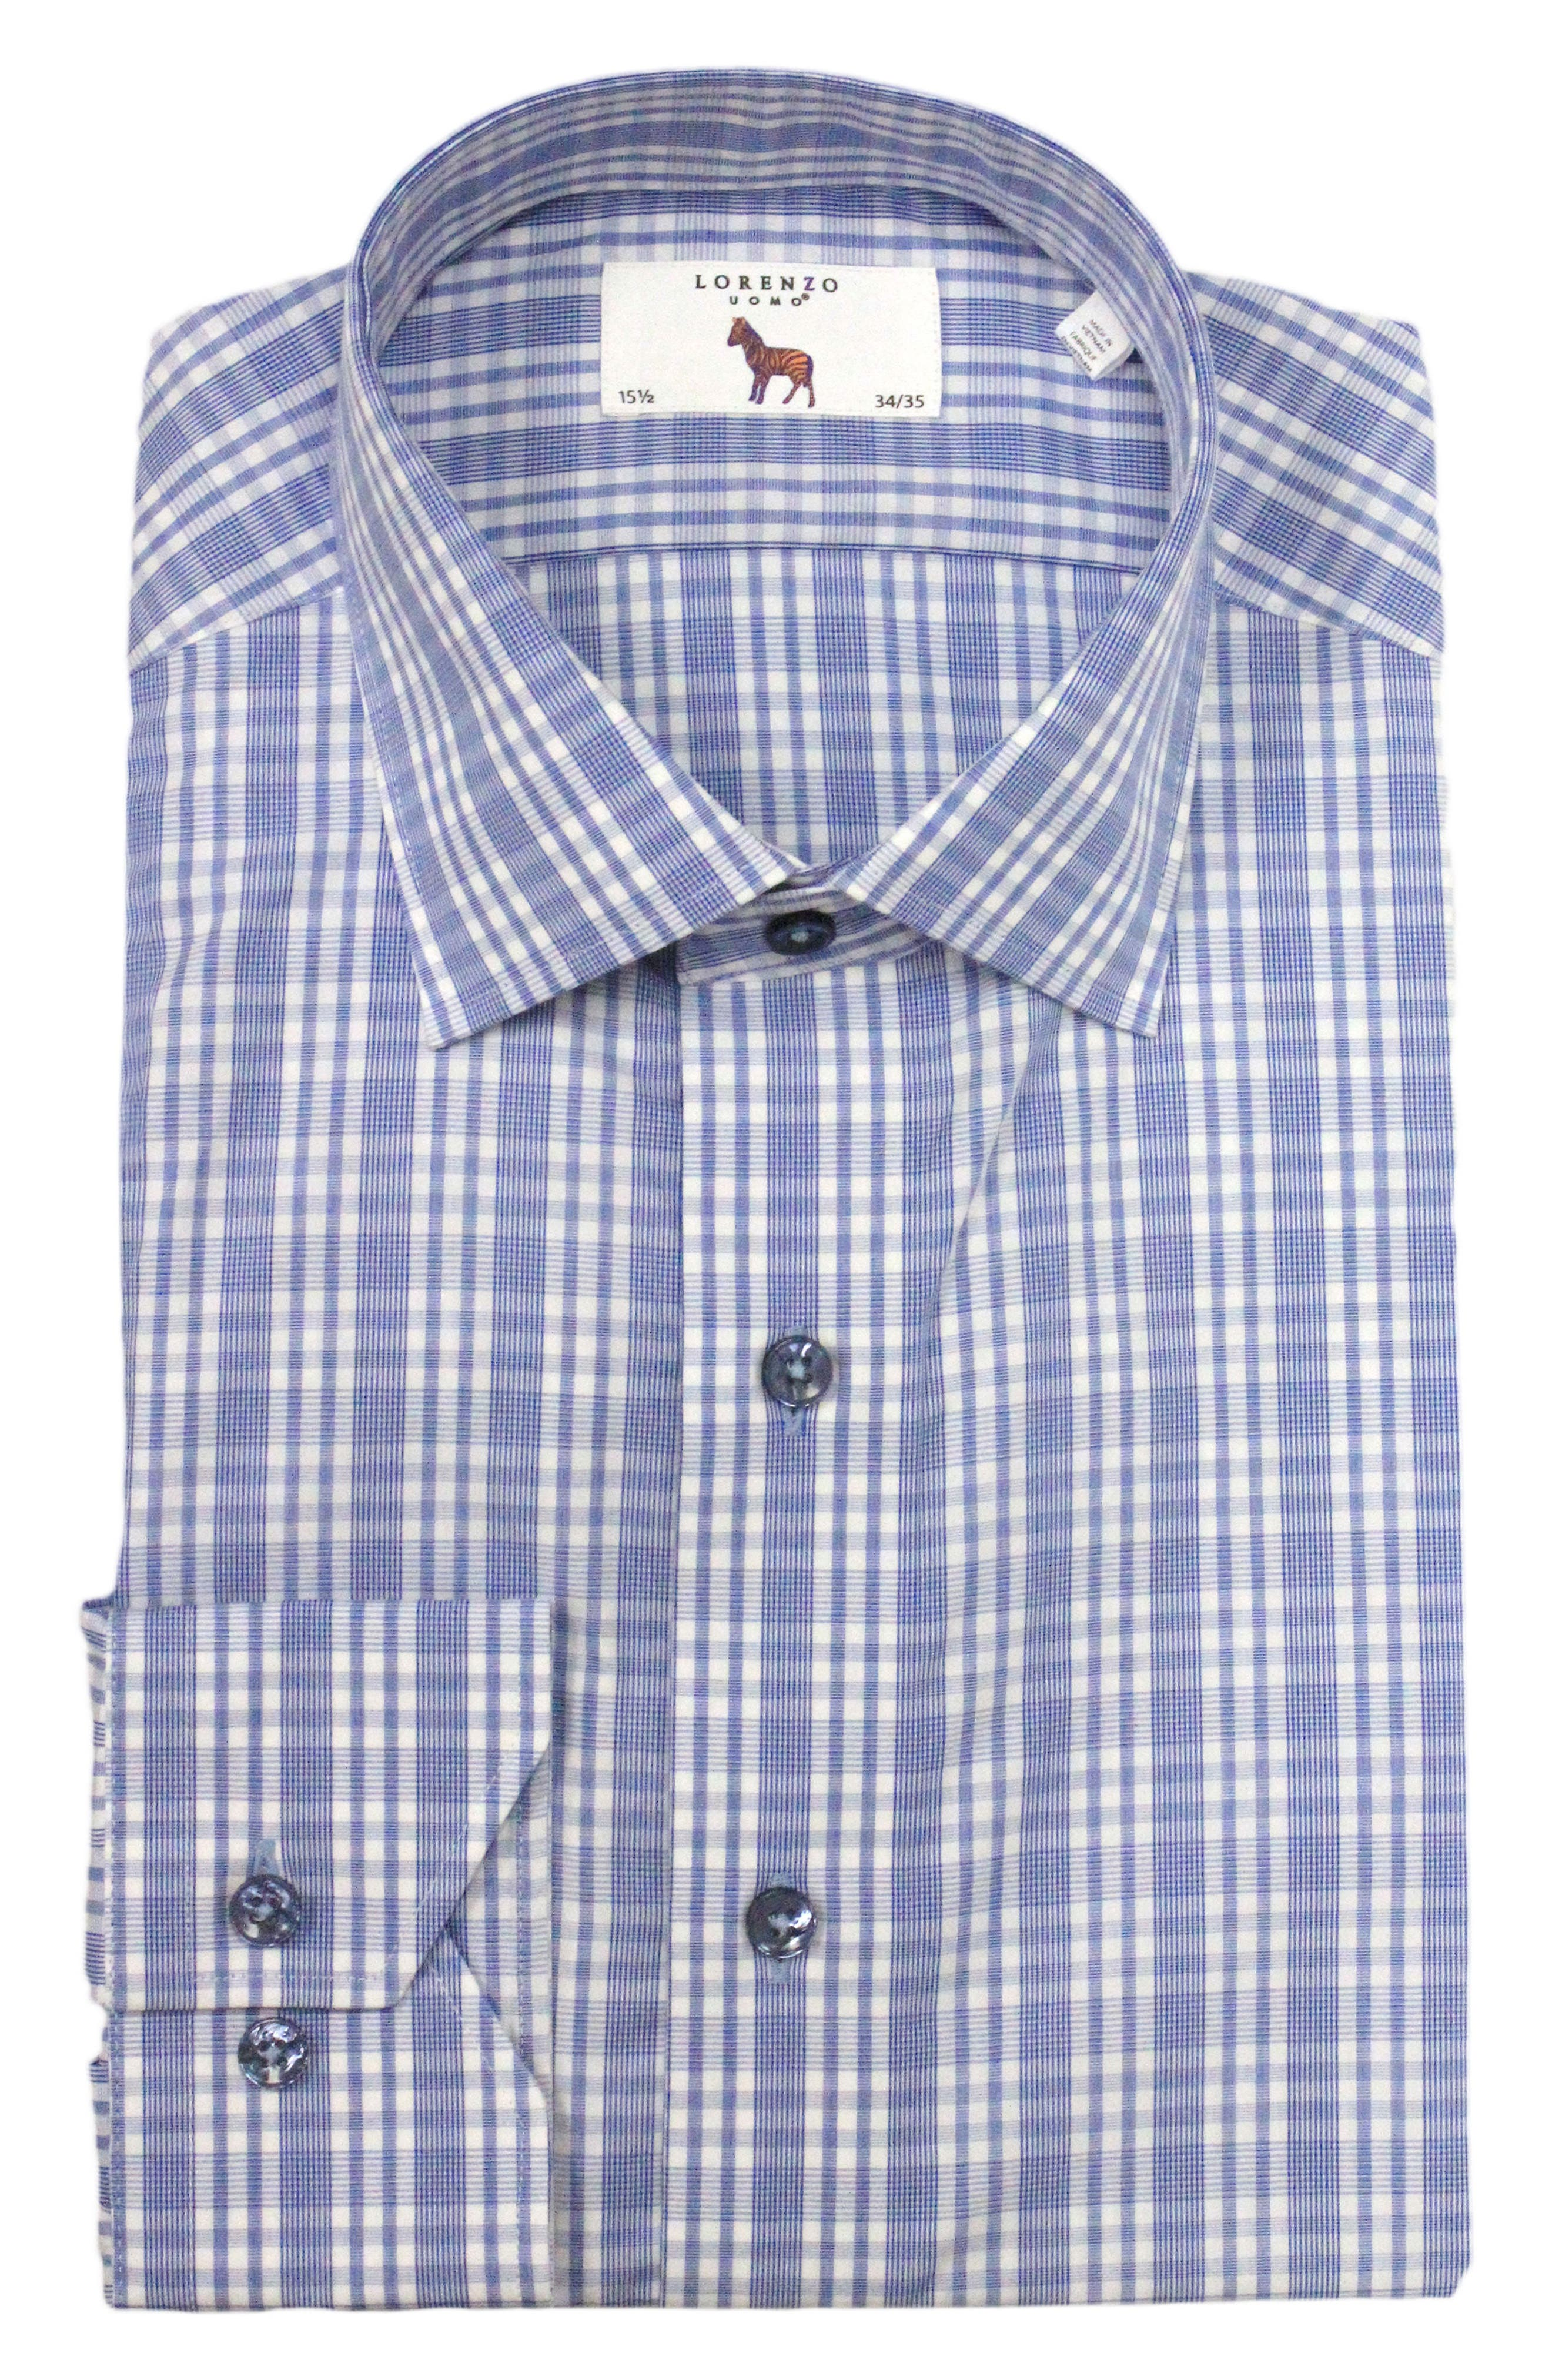 Trim Fit Plaid Dress Shirt,                         Main,                         color, LIGHT BLUE